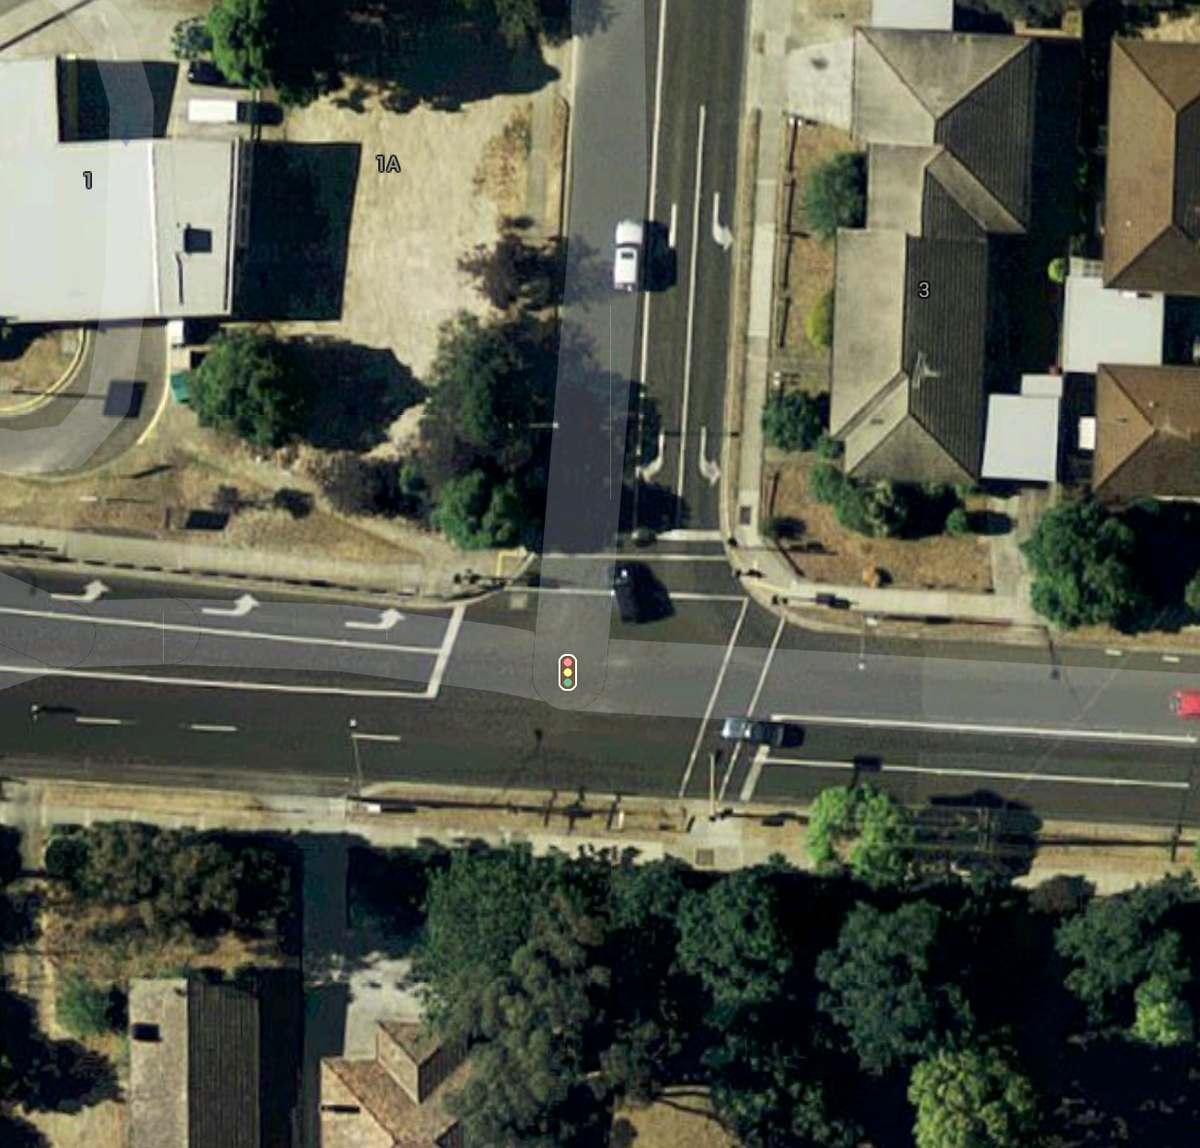 @VictoriaWalks @danielbowen @GregMLC  Intersections missing the 3rd or 4th ped xing like these are maddening. http://t.co/Iuz5kfVwIQ